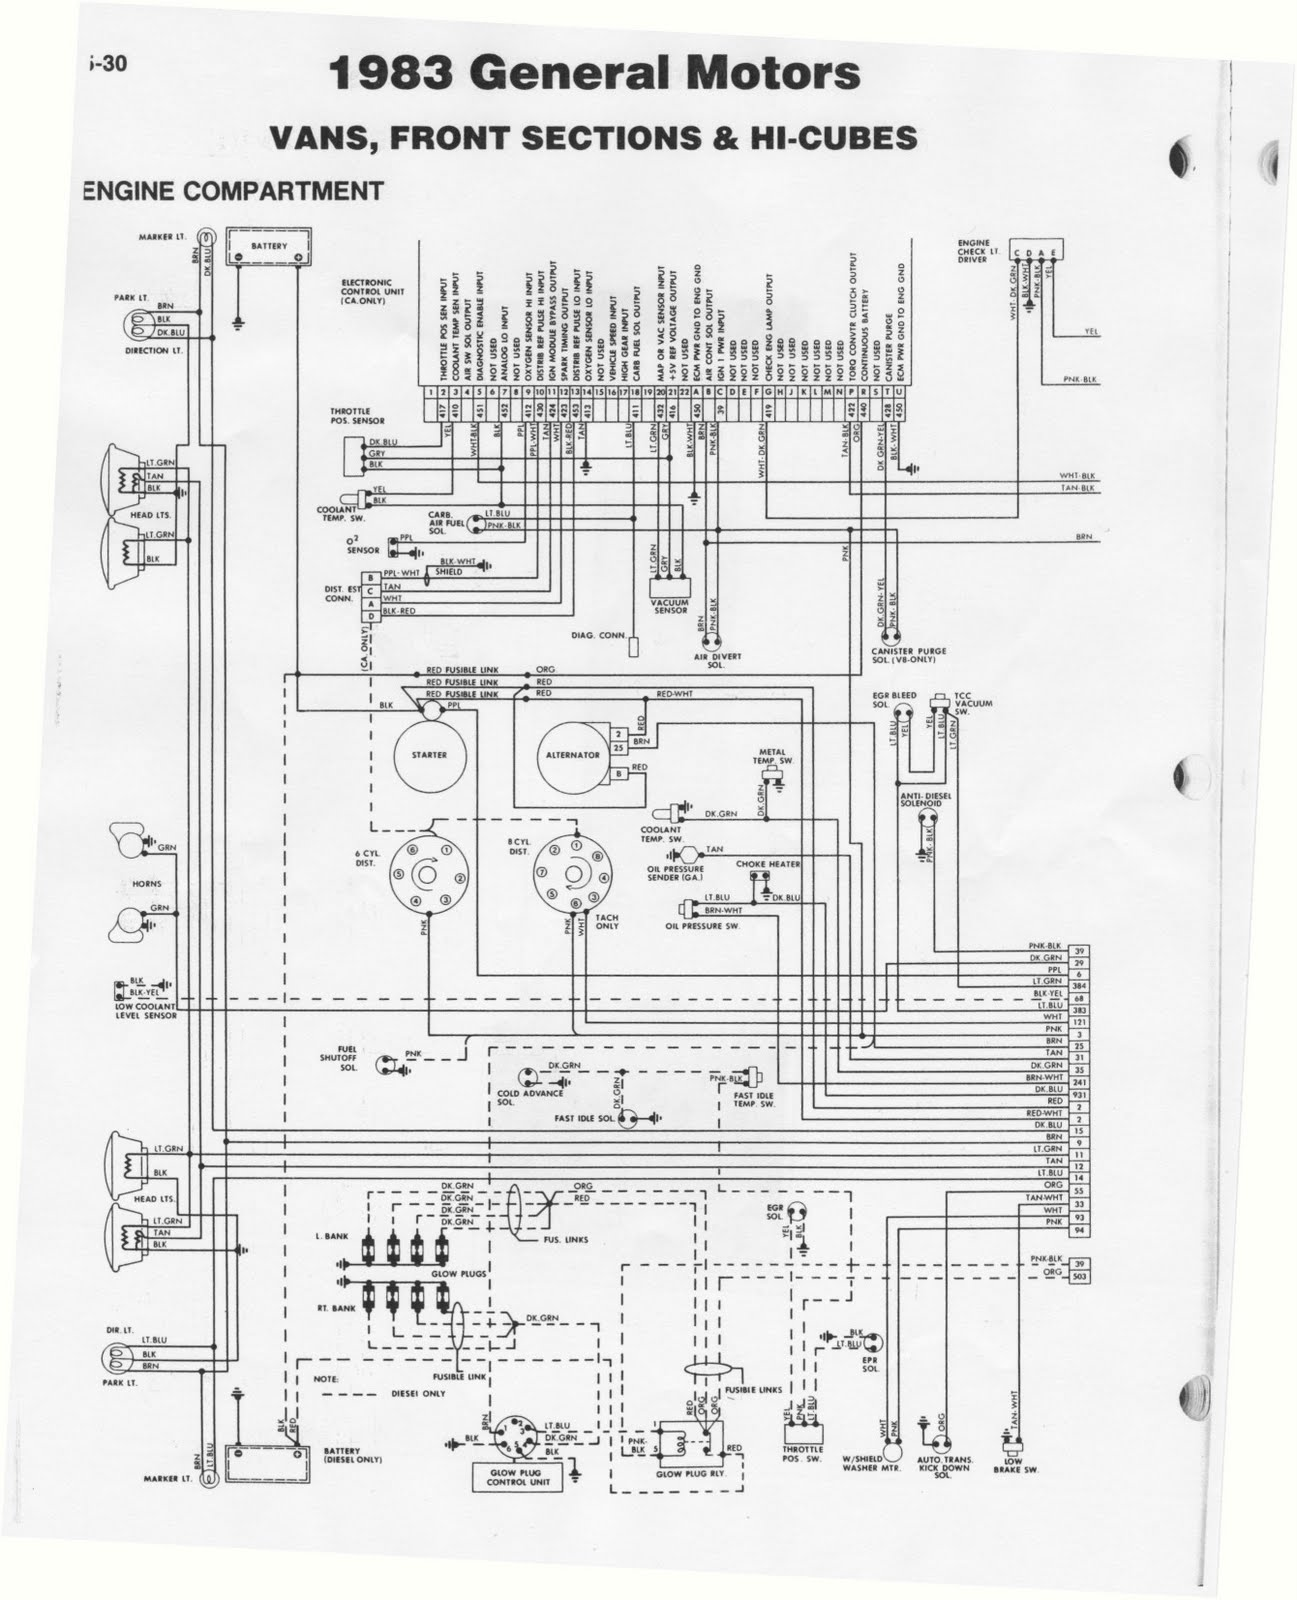 🏆 [DIAGRAM in Pictures Database] 1990 Fleetwood Motorhome Wiring Diagram  Just Download or Read Wiring Diagram - EXISTENTIAL-GRAPH.ONYXUM.COMComplete Diagram Picture Database - Onyxum.com